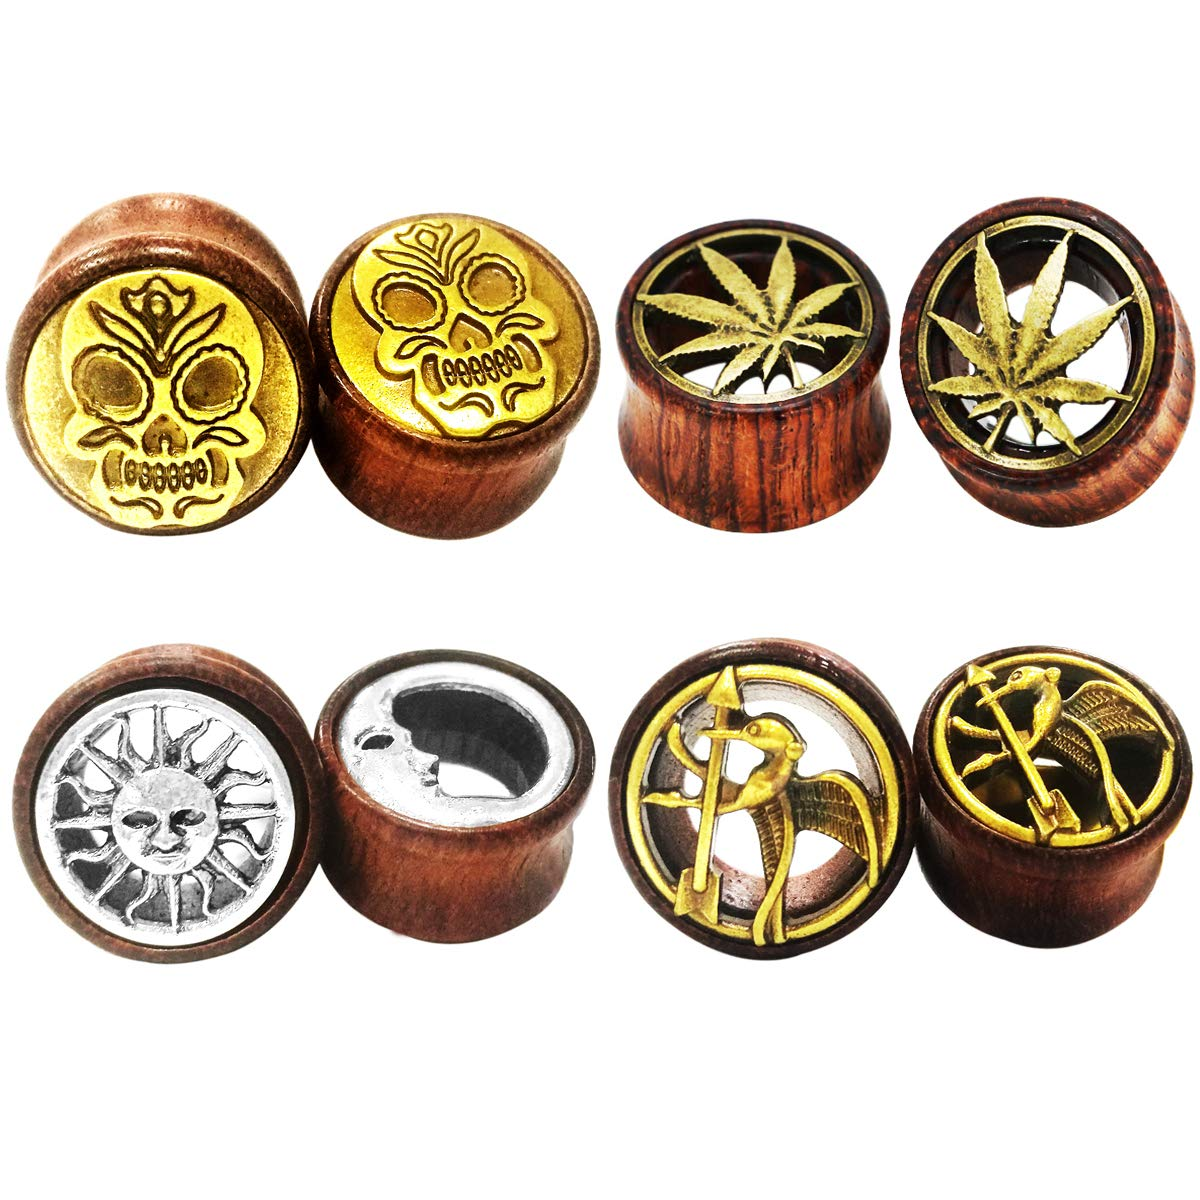 SUPTOP 8PC Organic Wood Ear Stretchers Double Flared Plugs and Tunnels for Ear Expander Wooden Gauges Size 0g-13/16 Inch by SUPTOP